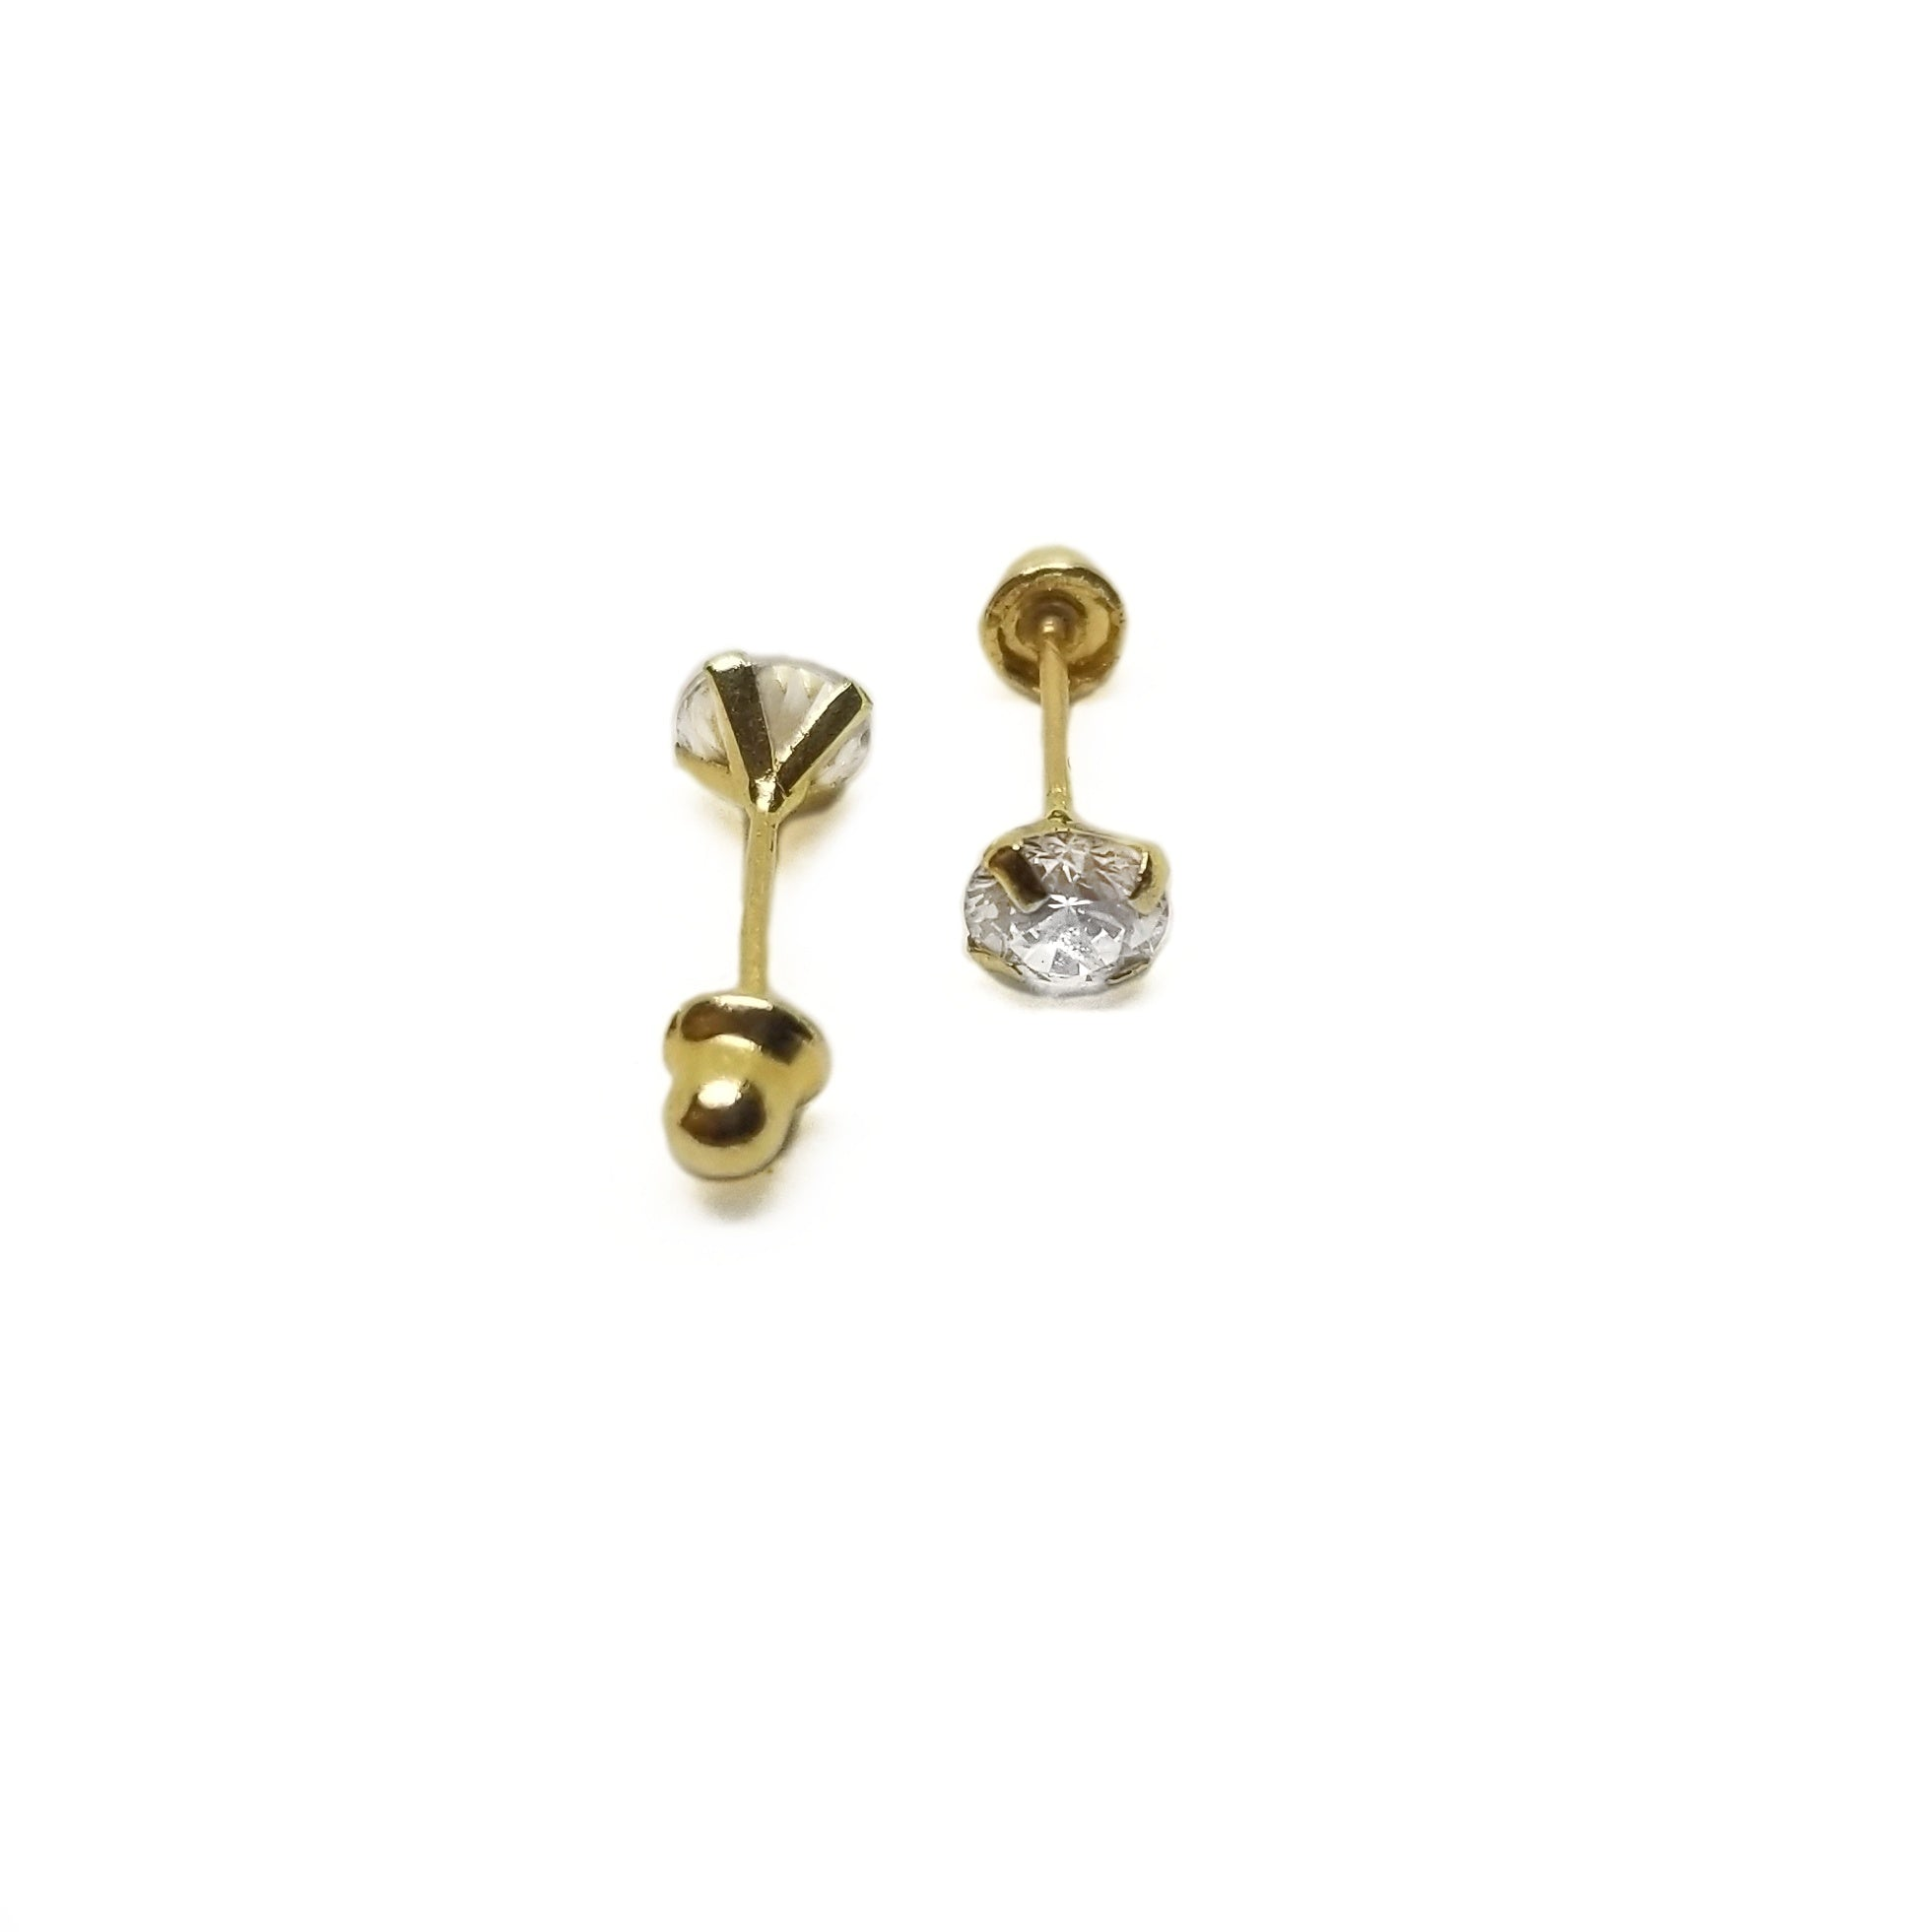 14k gold baby earrings with white cz